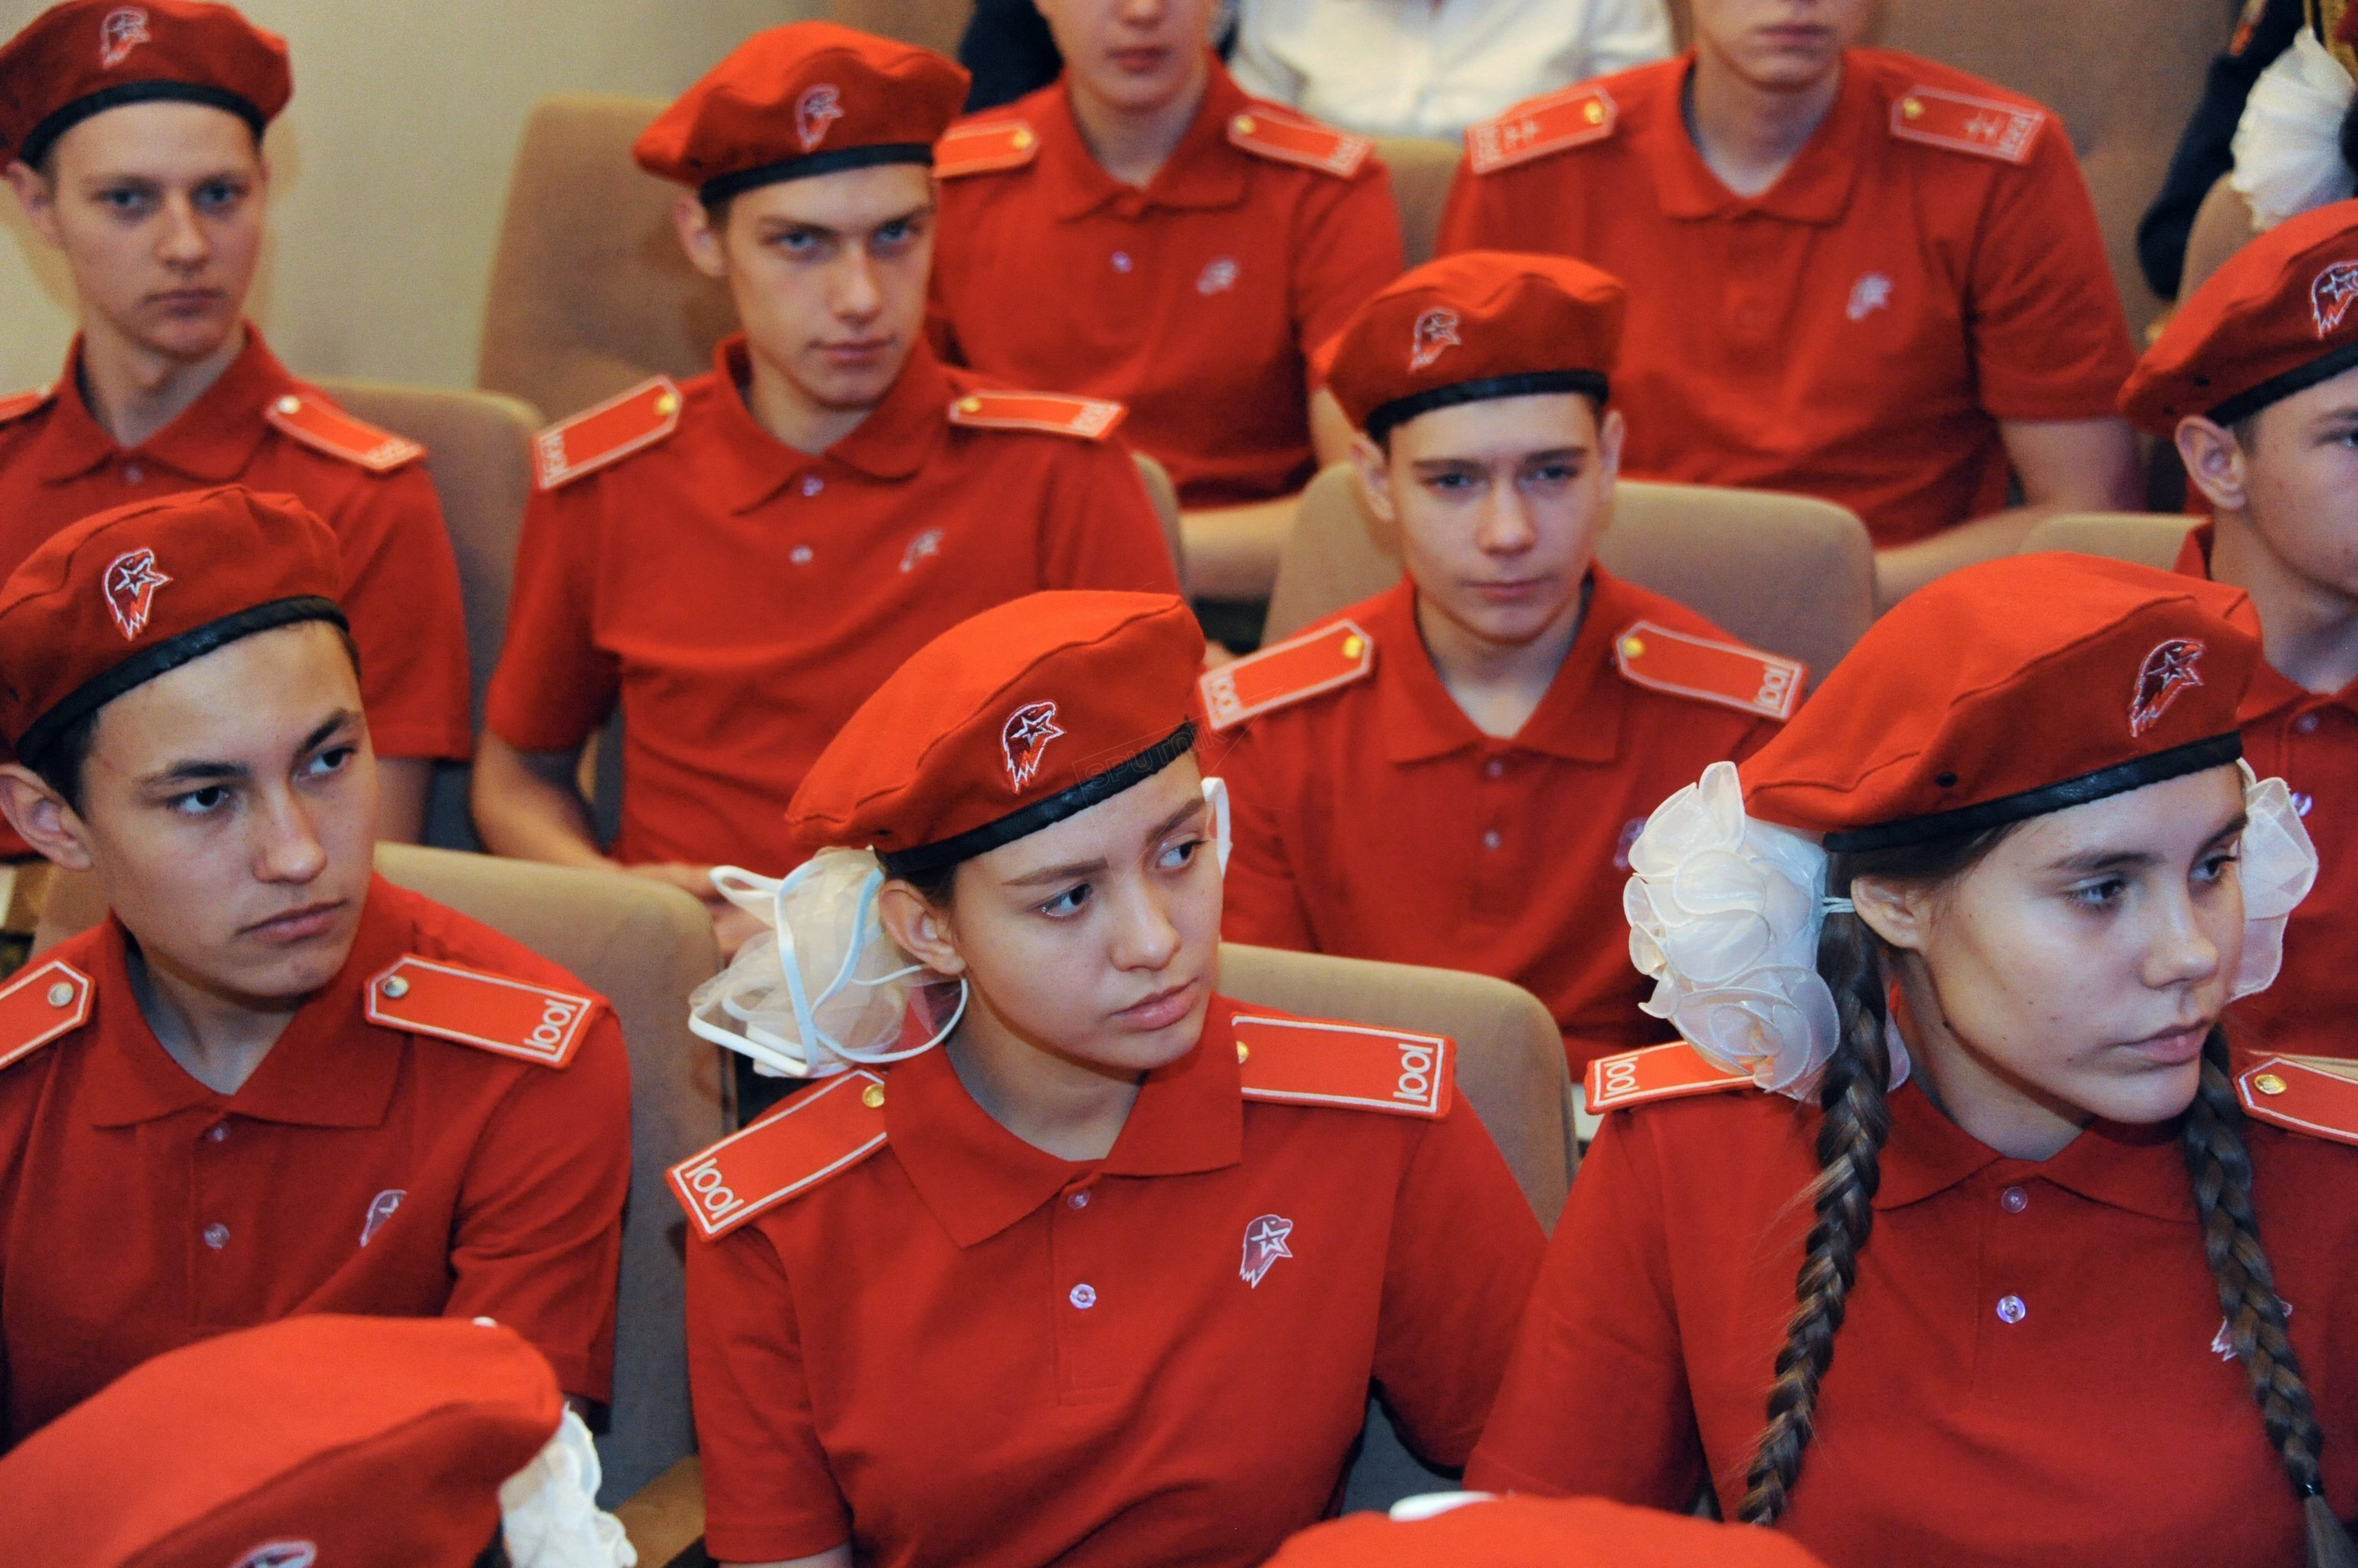 Participants of a meeting of the regional branch of the Yunarmiya nationwide military patriotic movement at the museum of the Trans-Baikal Territory Officers' Club military-patriotic education center in Chita.